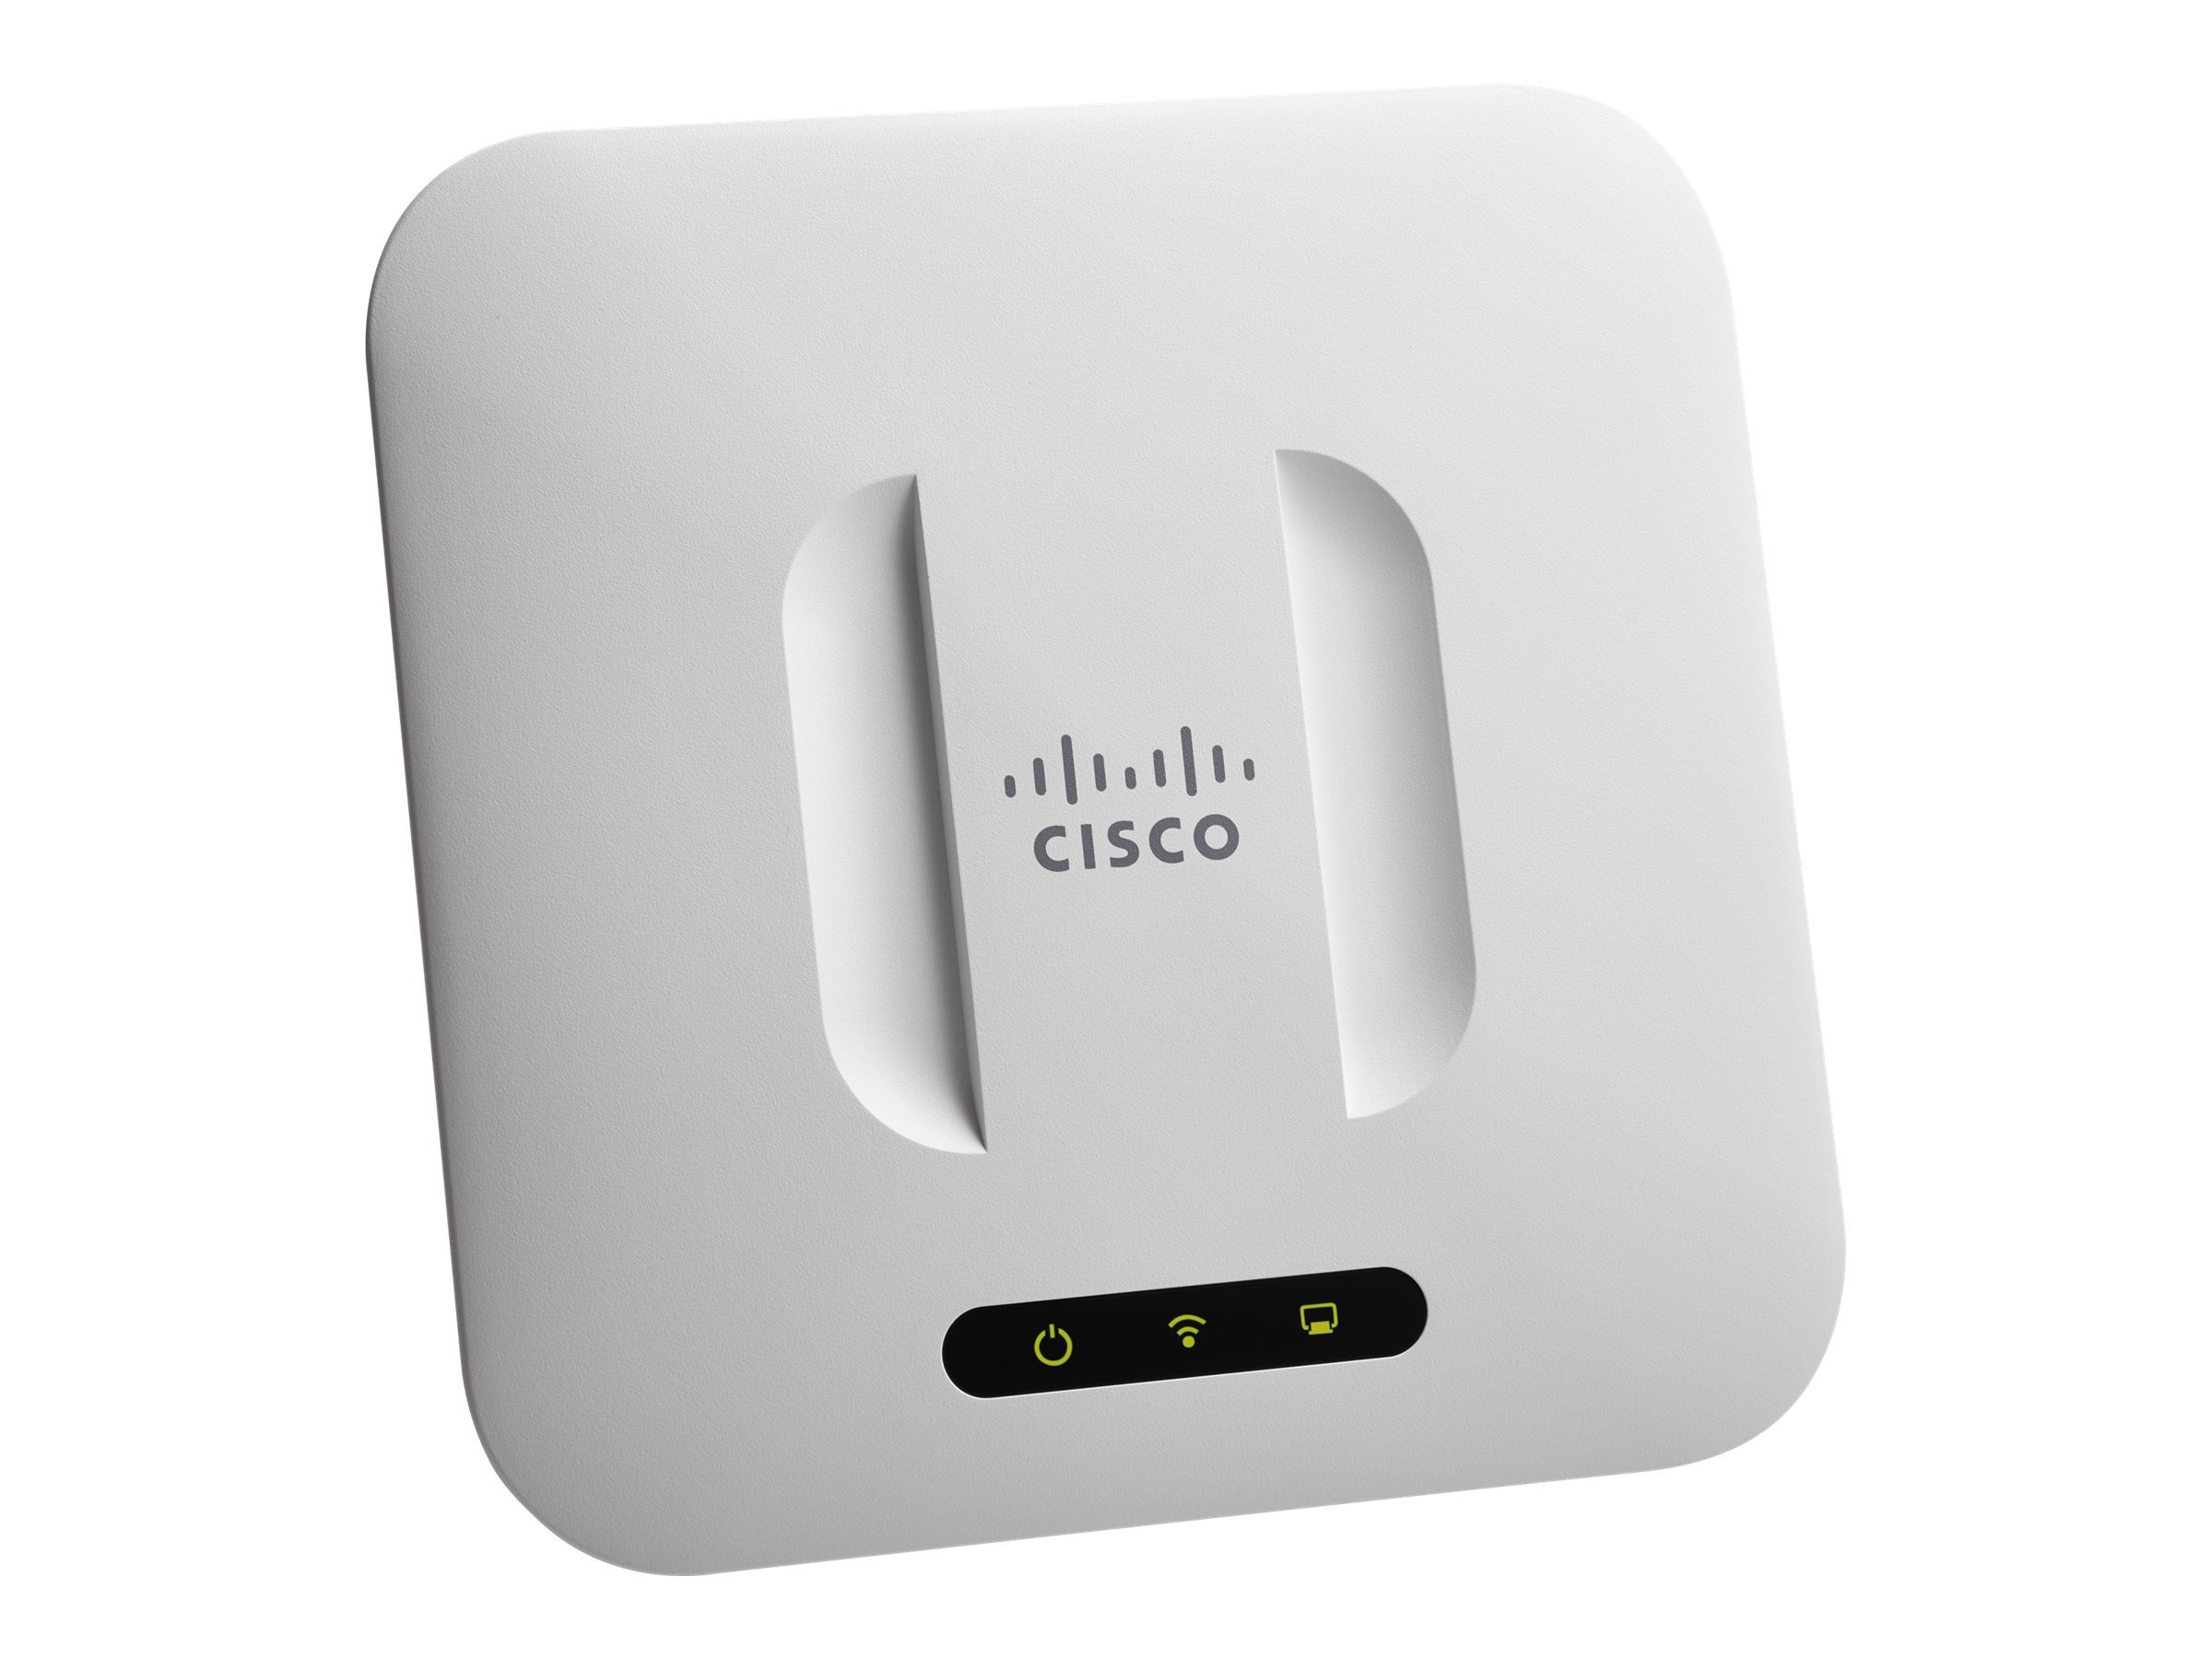 CISCO SYSTEMS 802.11ac Wireless Access Point (WAP371AK9) by Cisco Systems